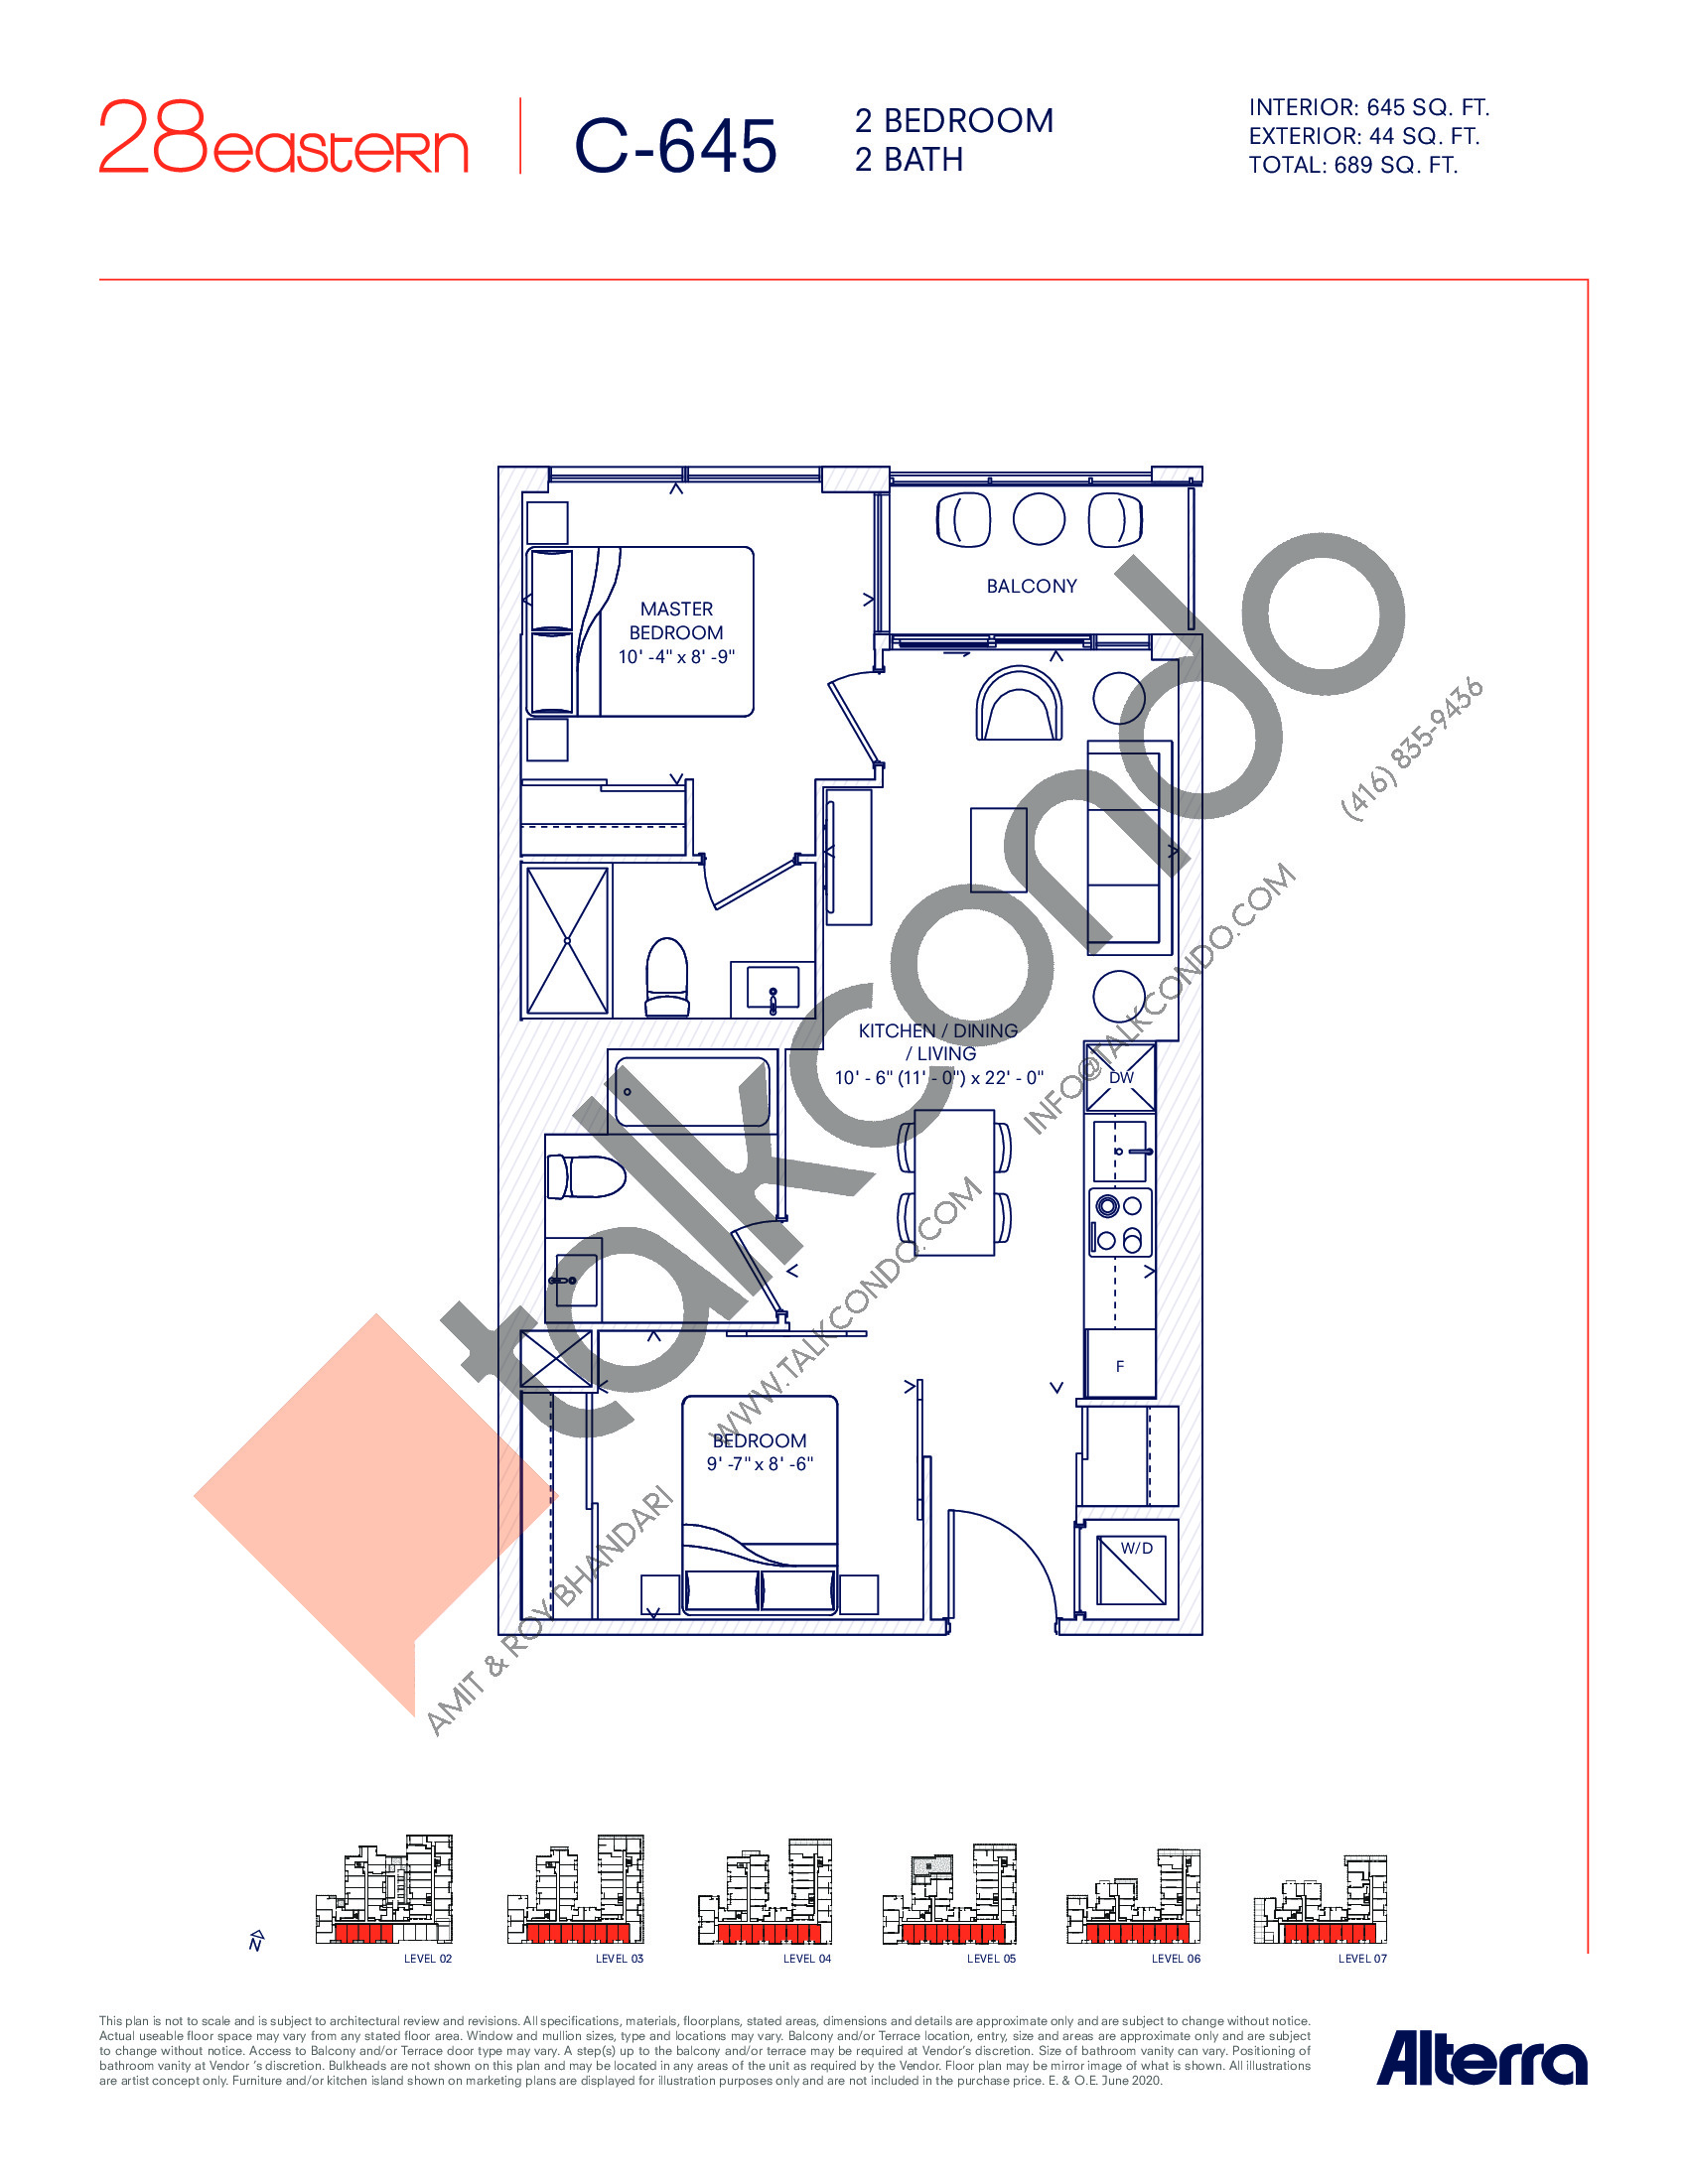 C-645 Floor Plan at 28 Eastern Condos - 645 sq.ft